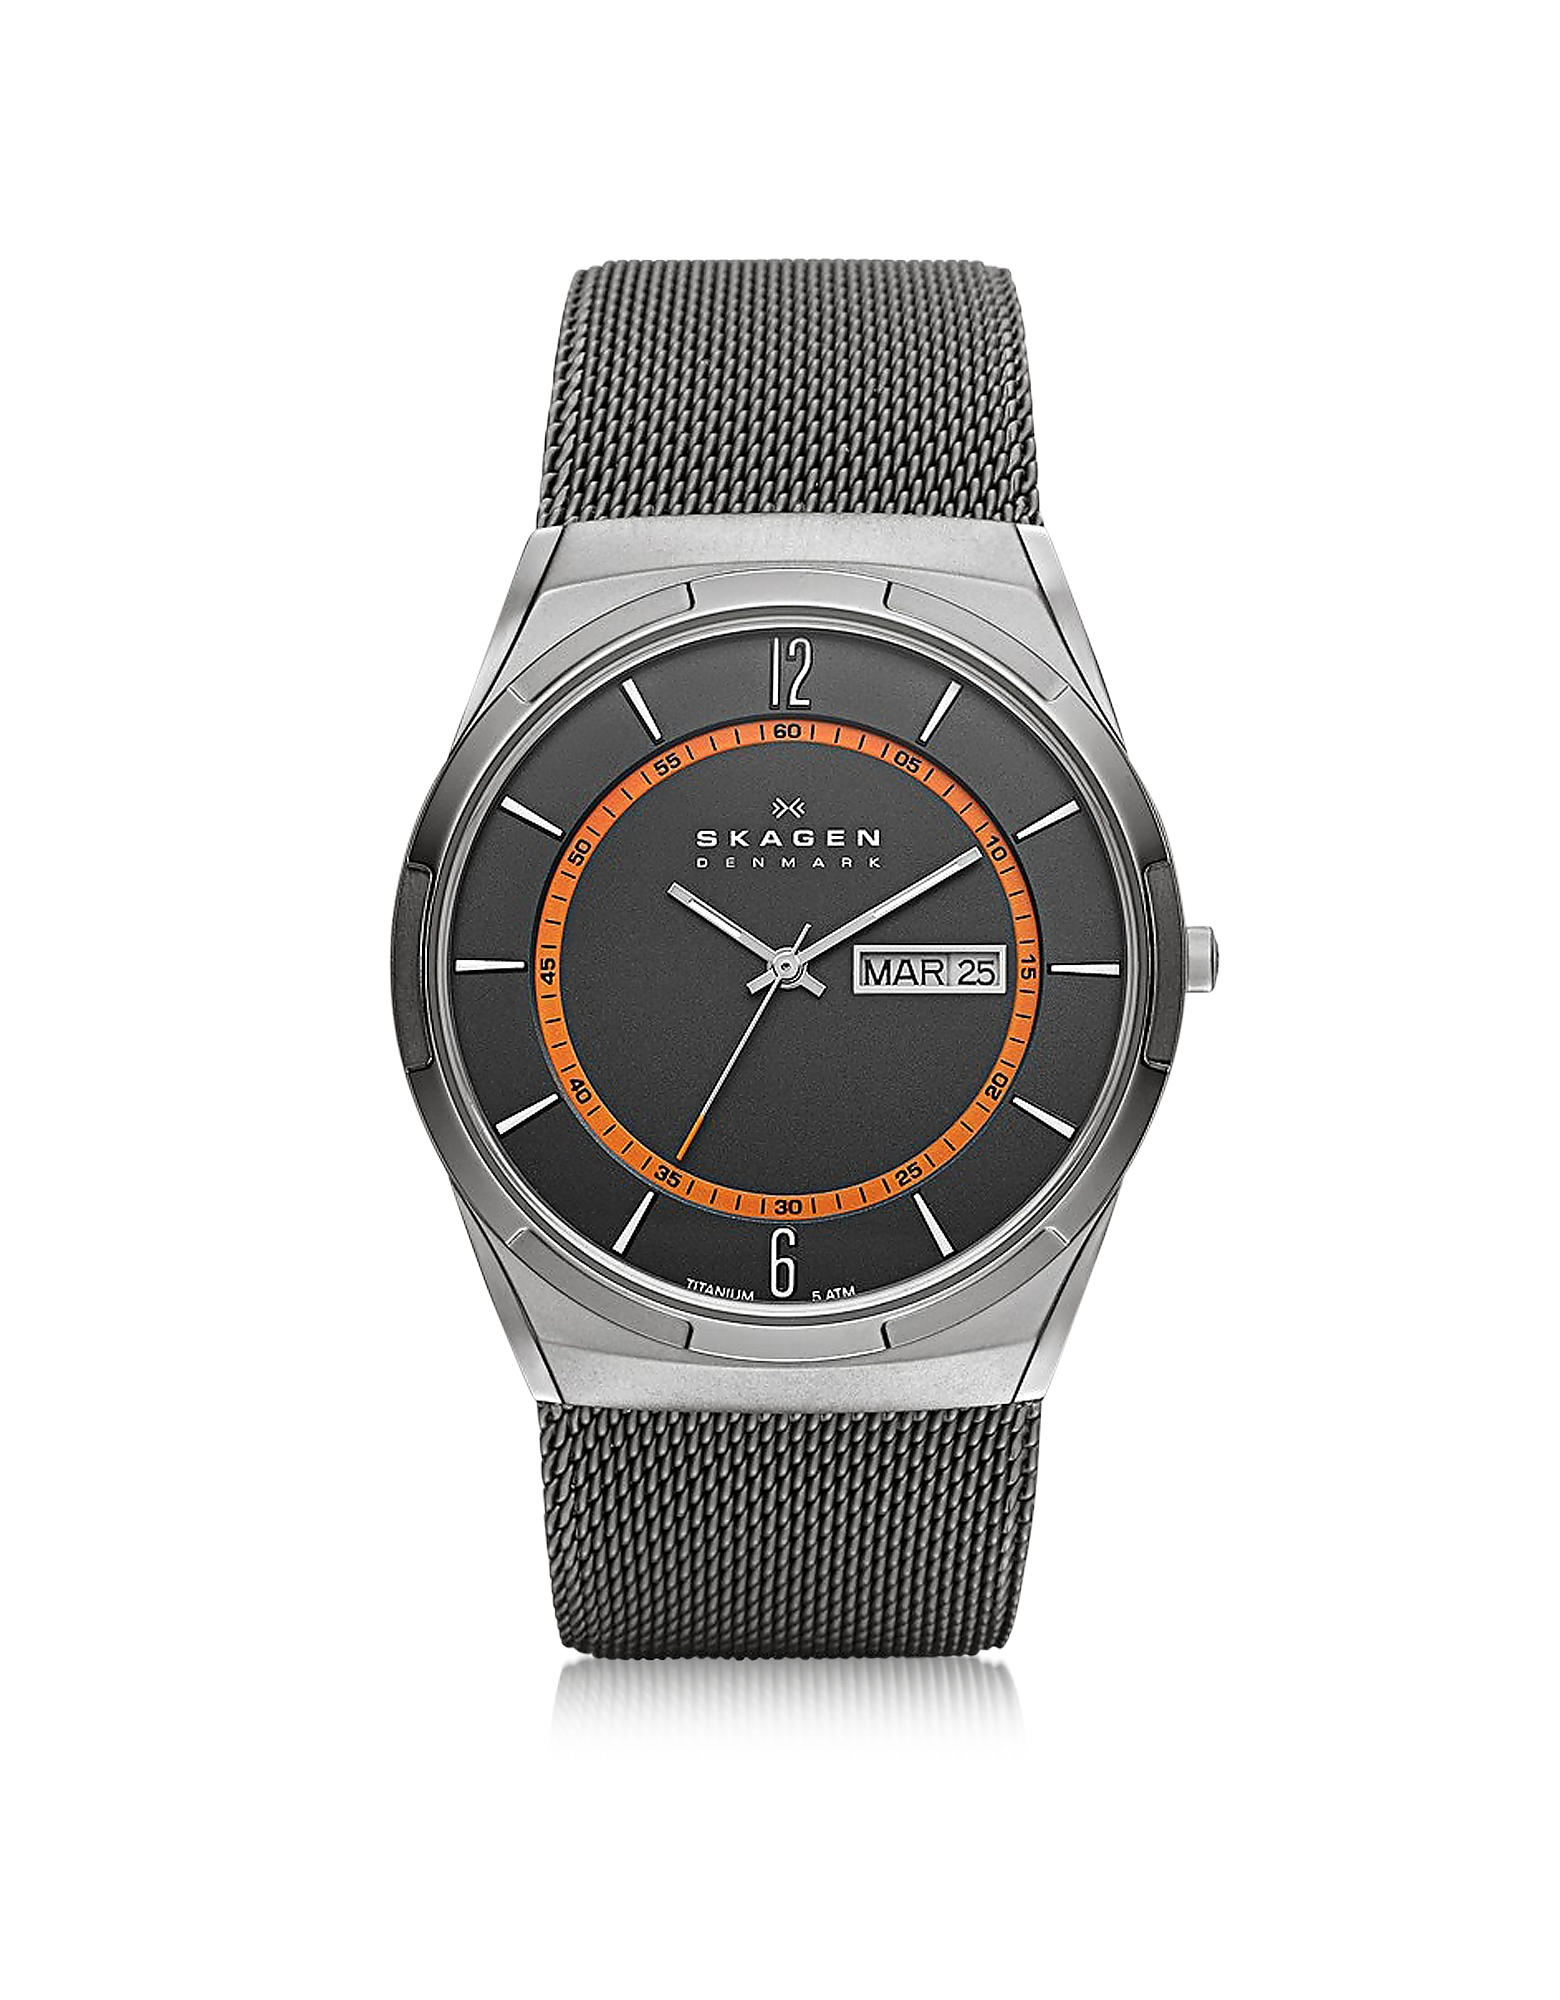 Skagen Men's Watches, Melbye Gray & Orange Titanium Men's Watch